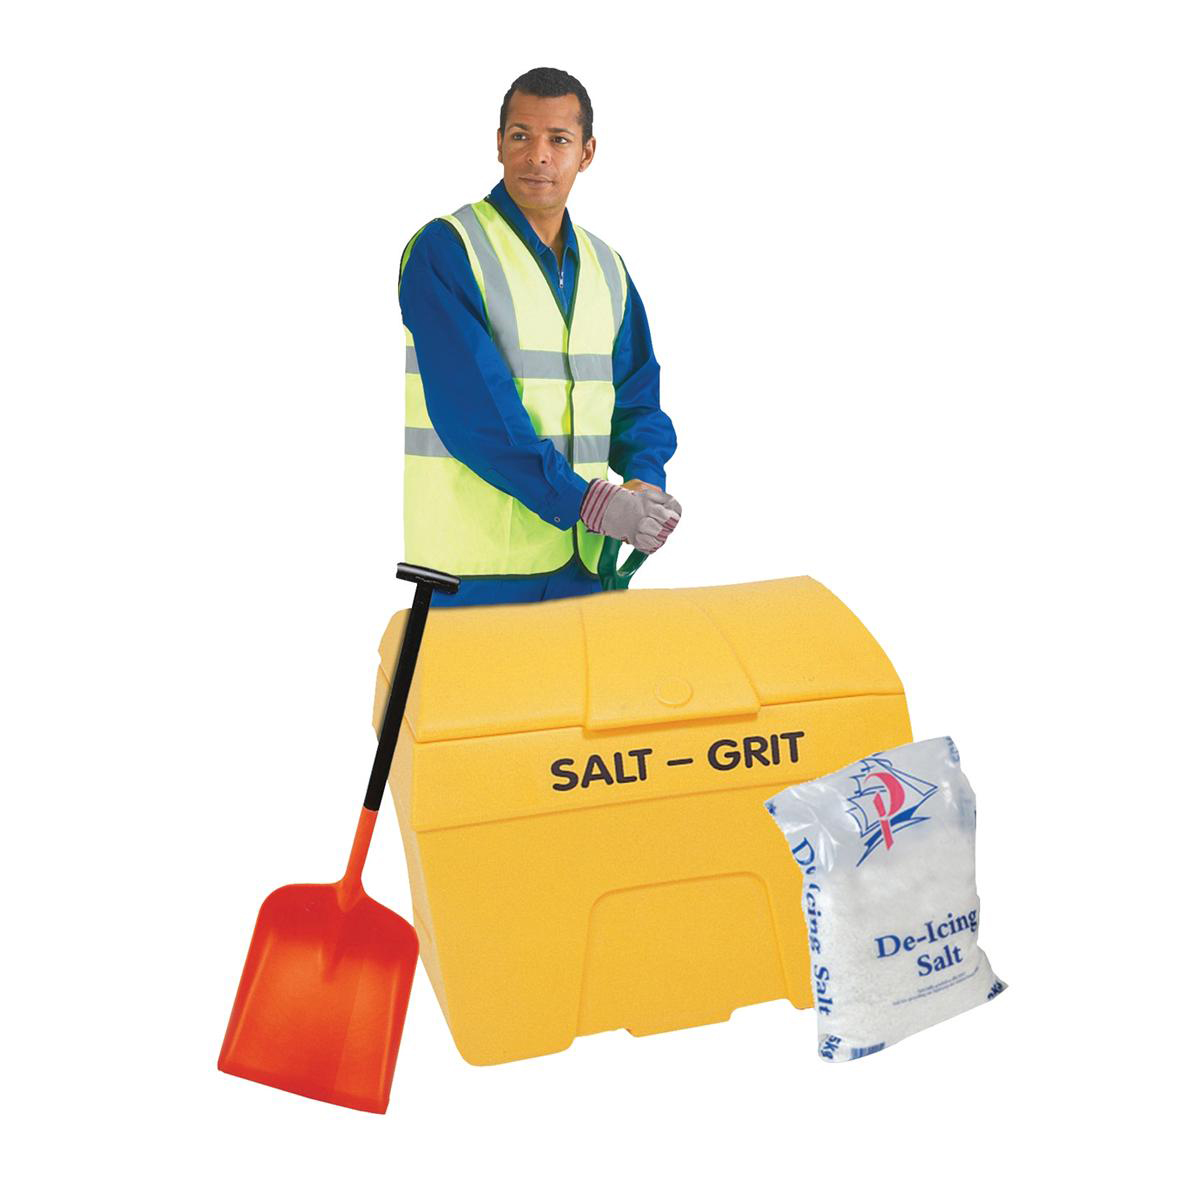 De-Icing Supplies Winter Kit Salt Bin Starter Kit Yellow 200 Litre with Salt Bag White 2 x 25kg Shovel Gloves Hi-Vis Jacket